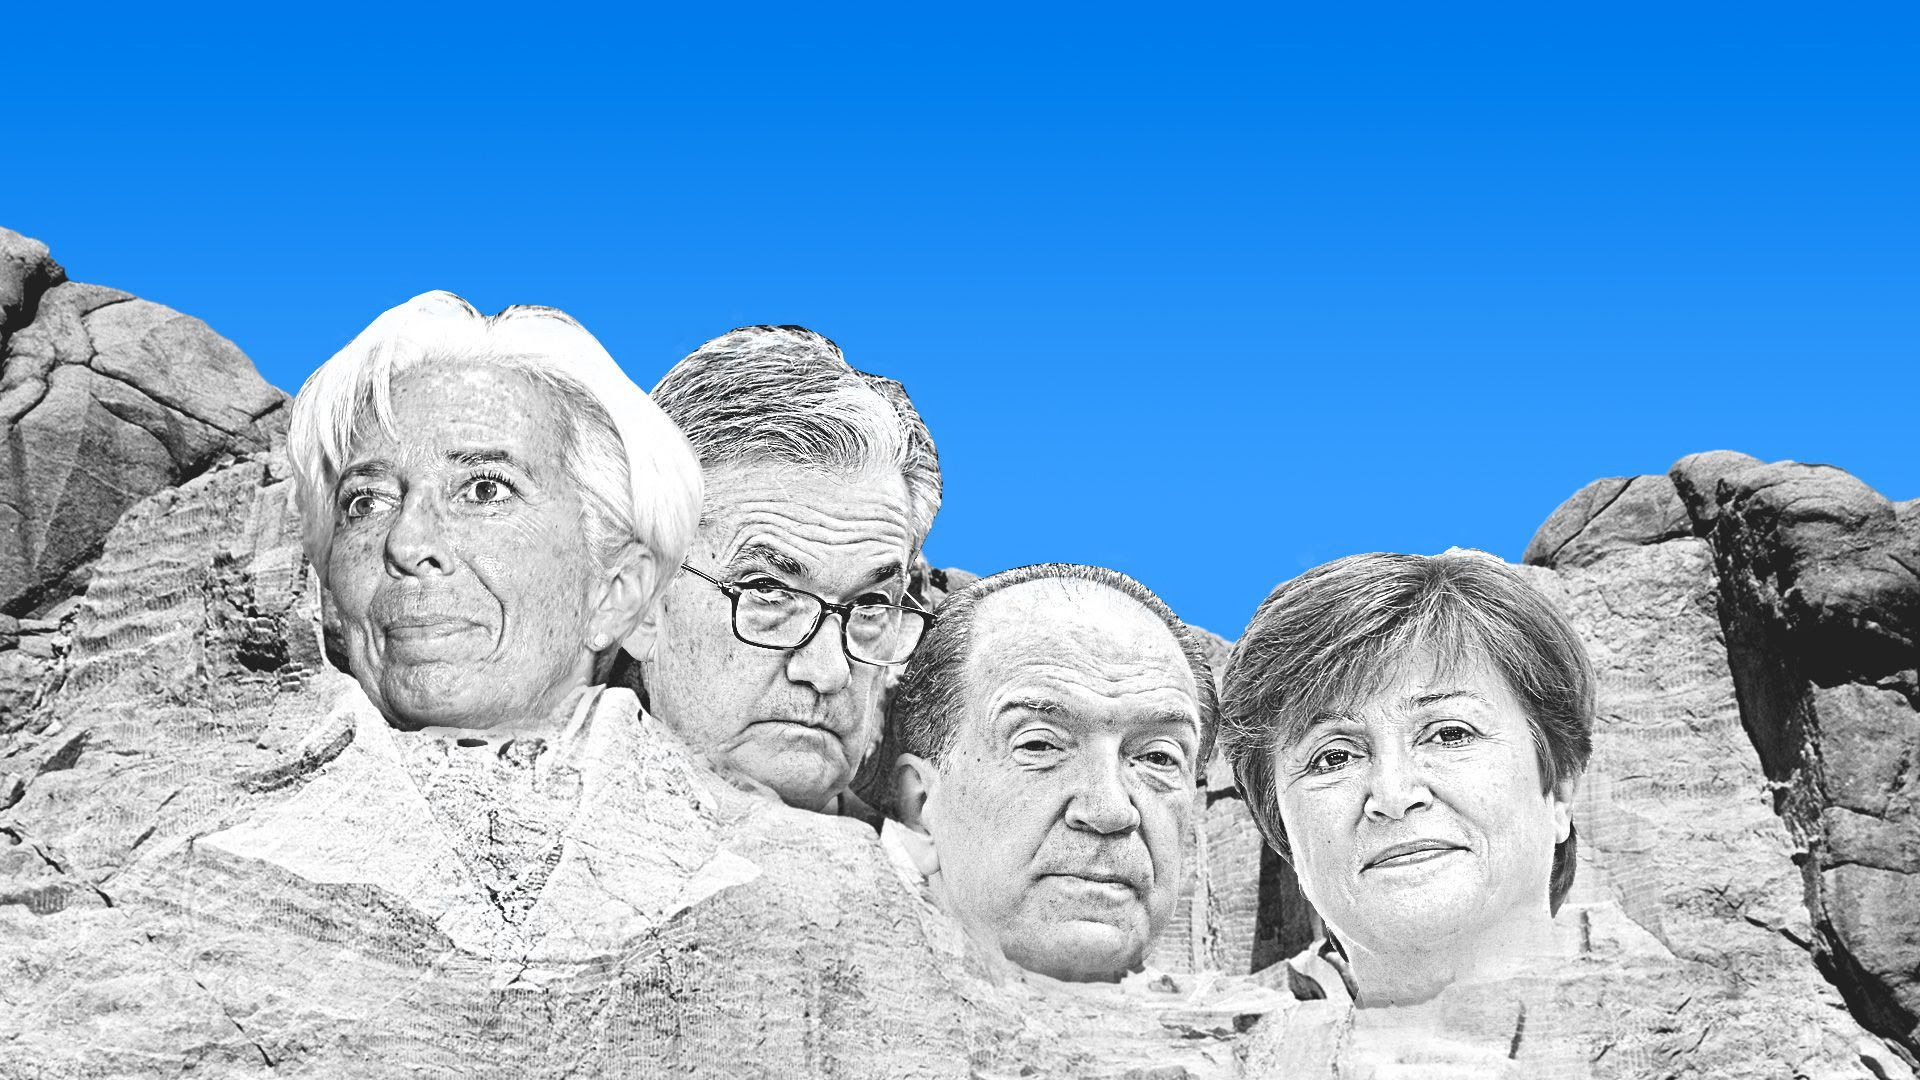 The faces of Christine Lagarde, Jerome Powell, David Malpass and Kristalina Georgieva carved into a mountain.